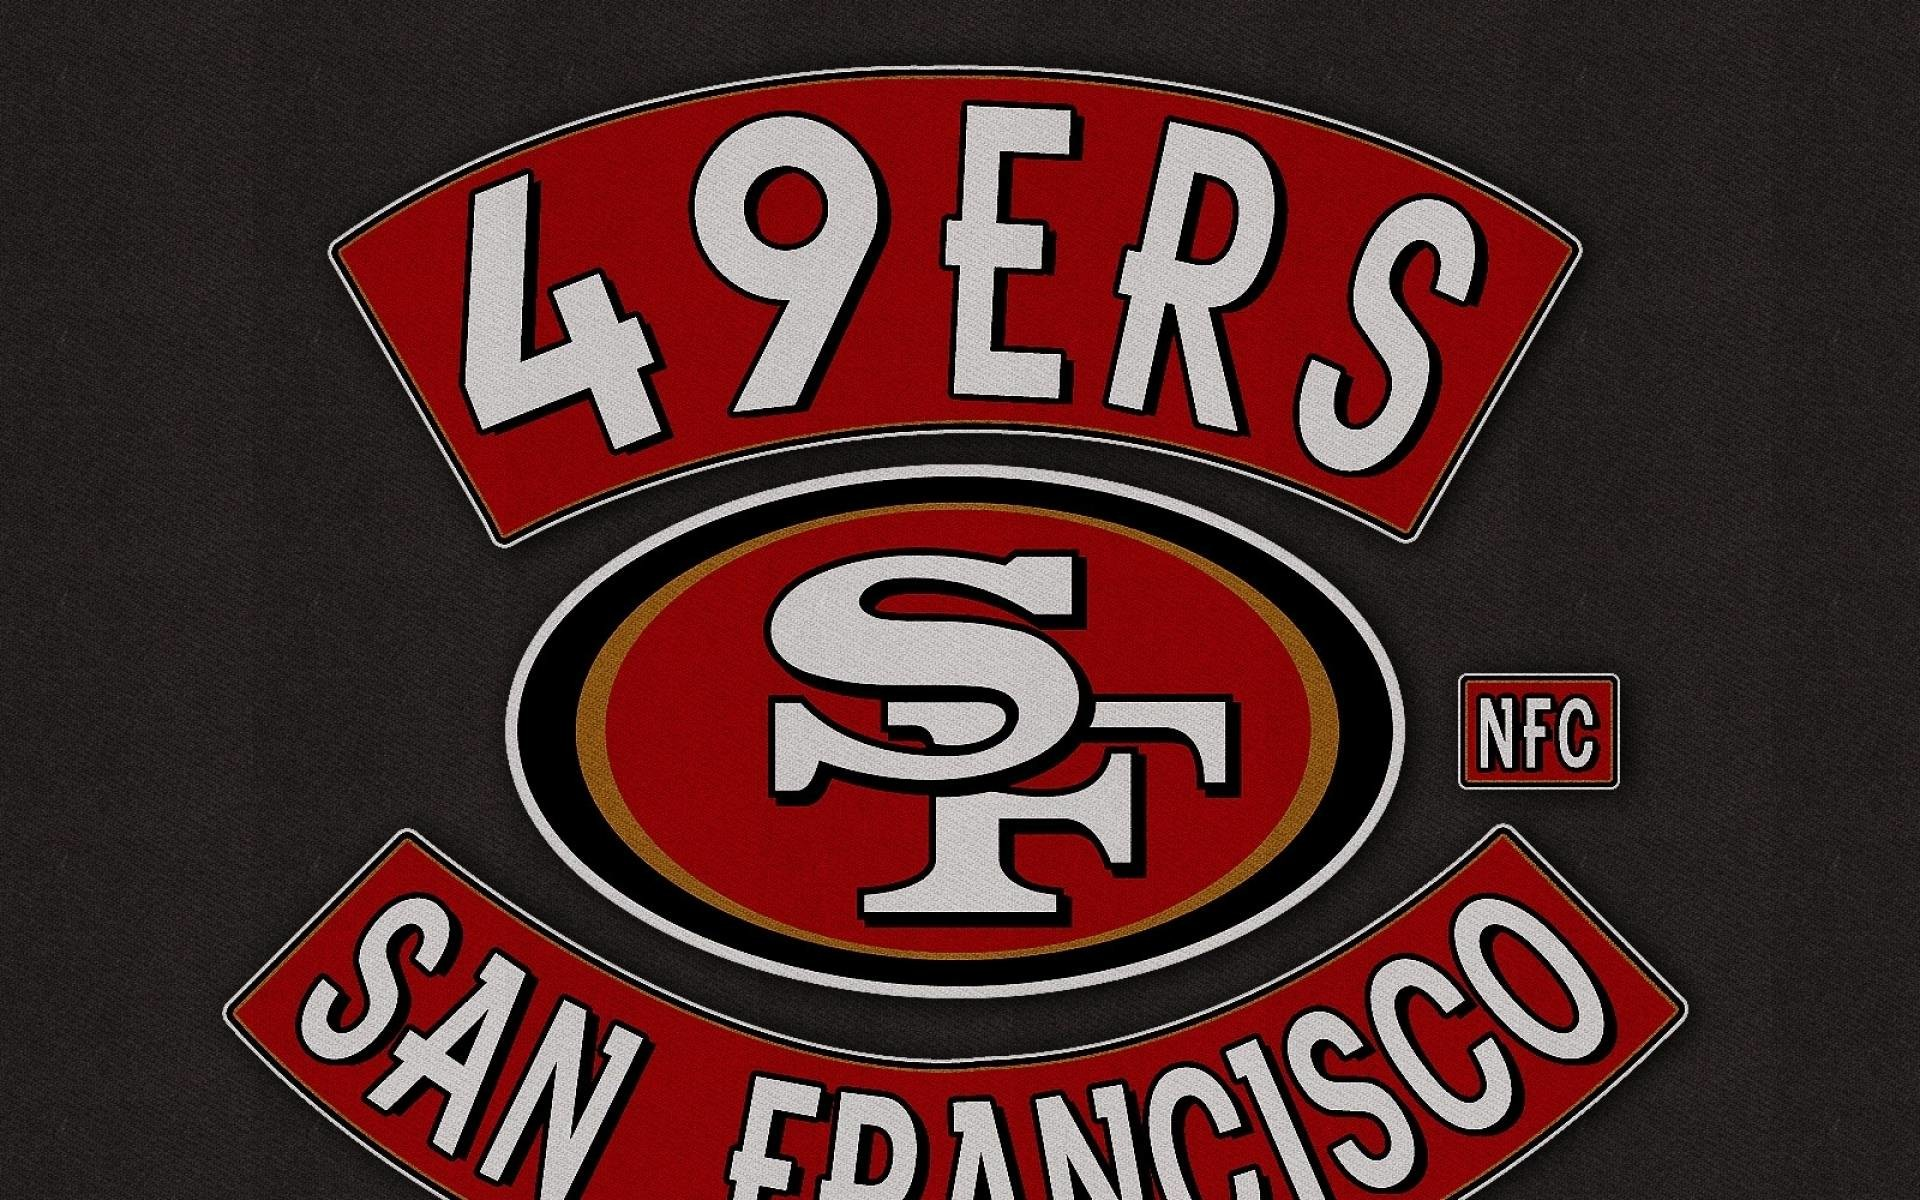 49ers wallpapers your phone san francisco 49ers wallpapers voltagebd Choice Image